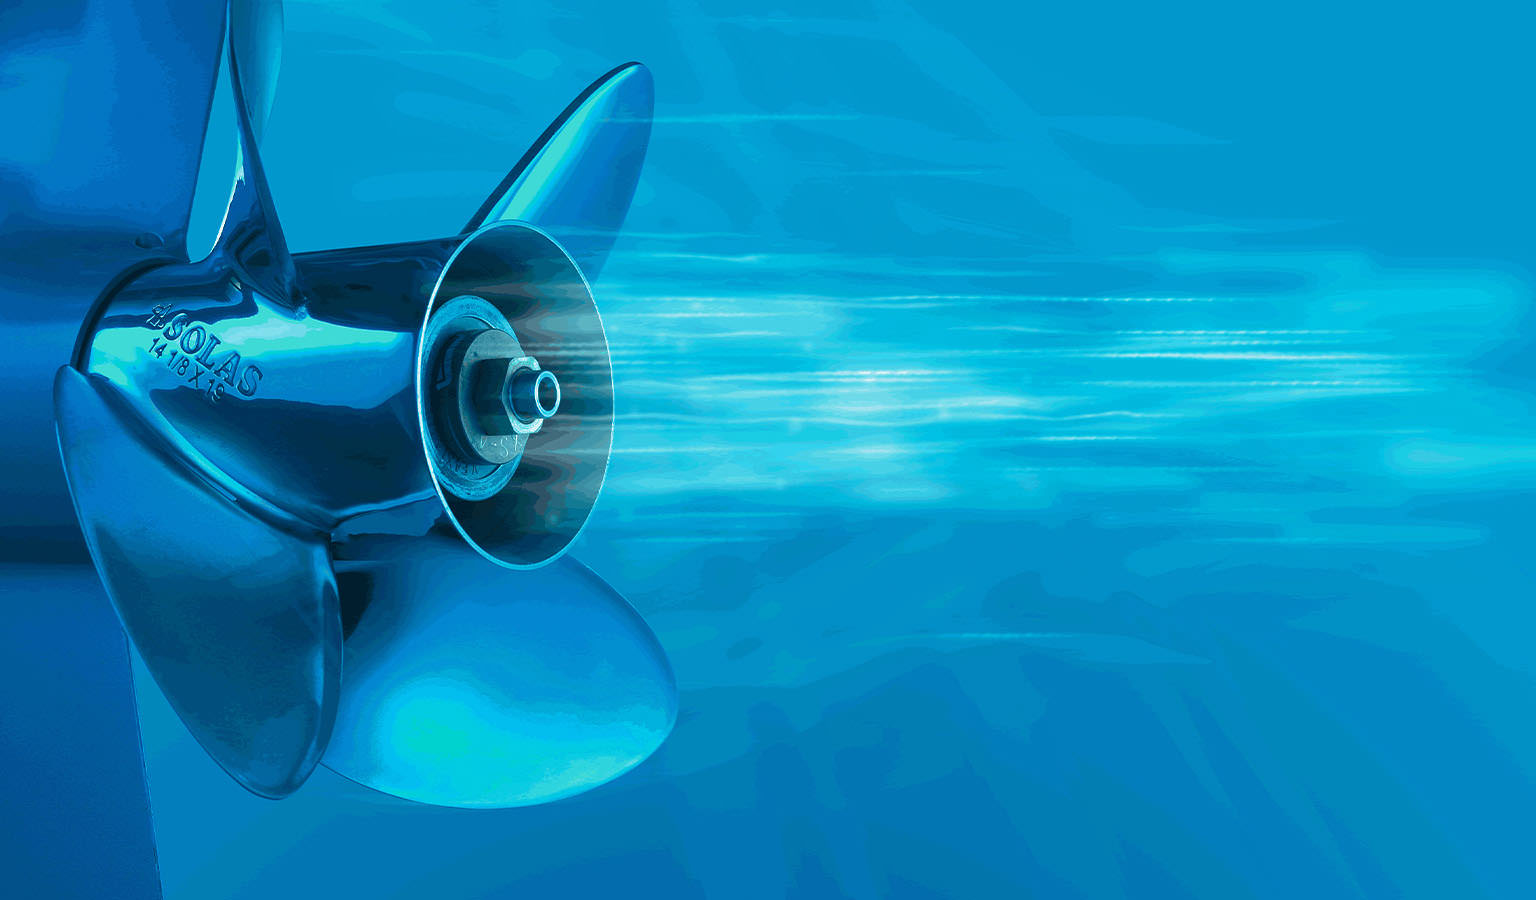 Save up to 20% on propellers